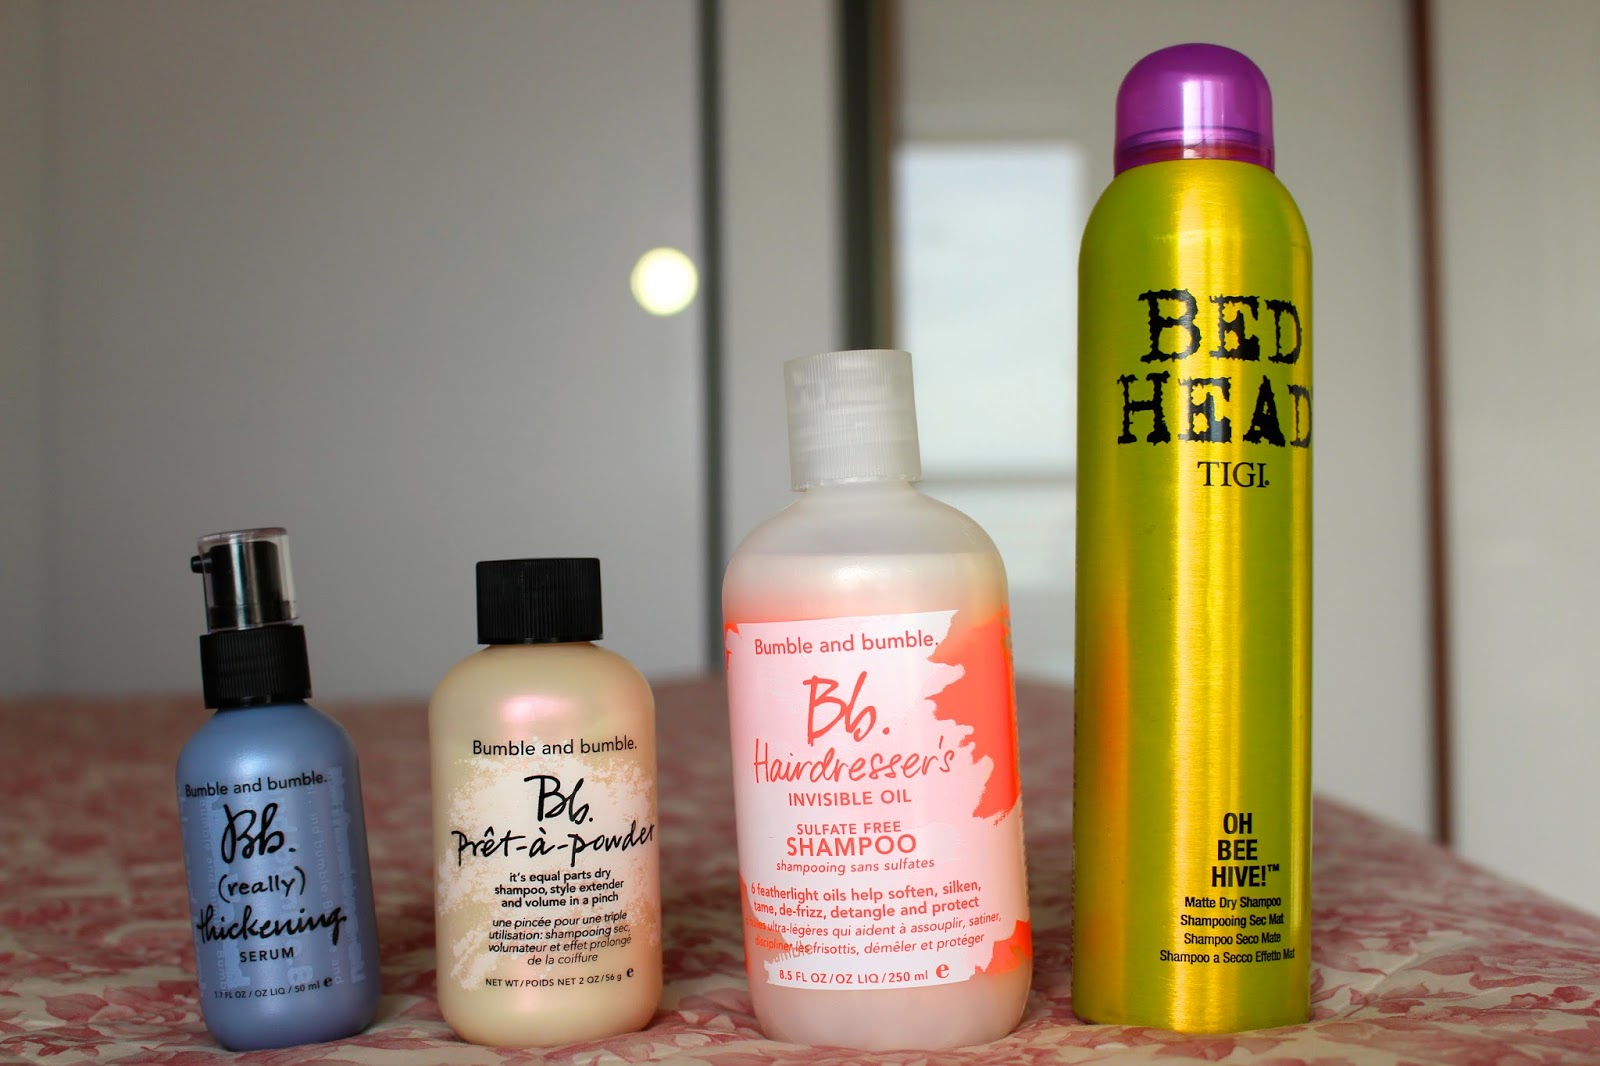 Bumble&Bumble Products